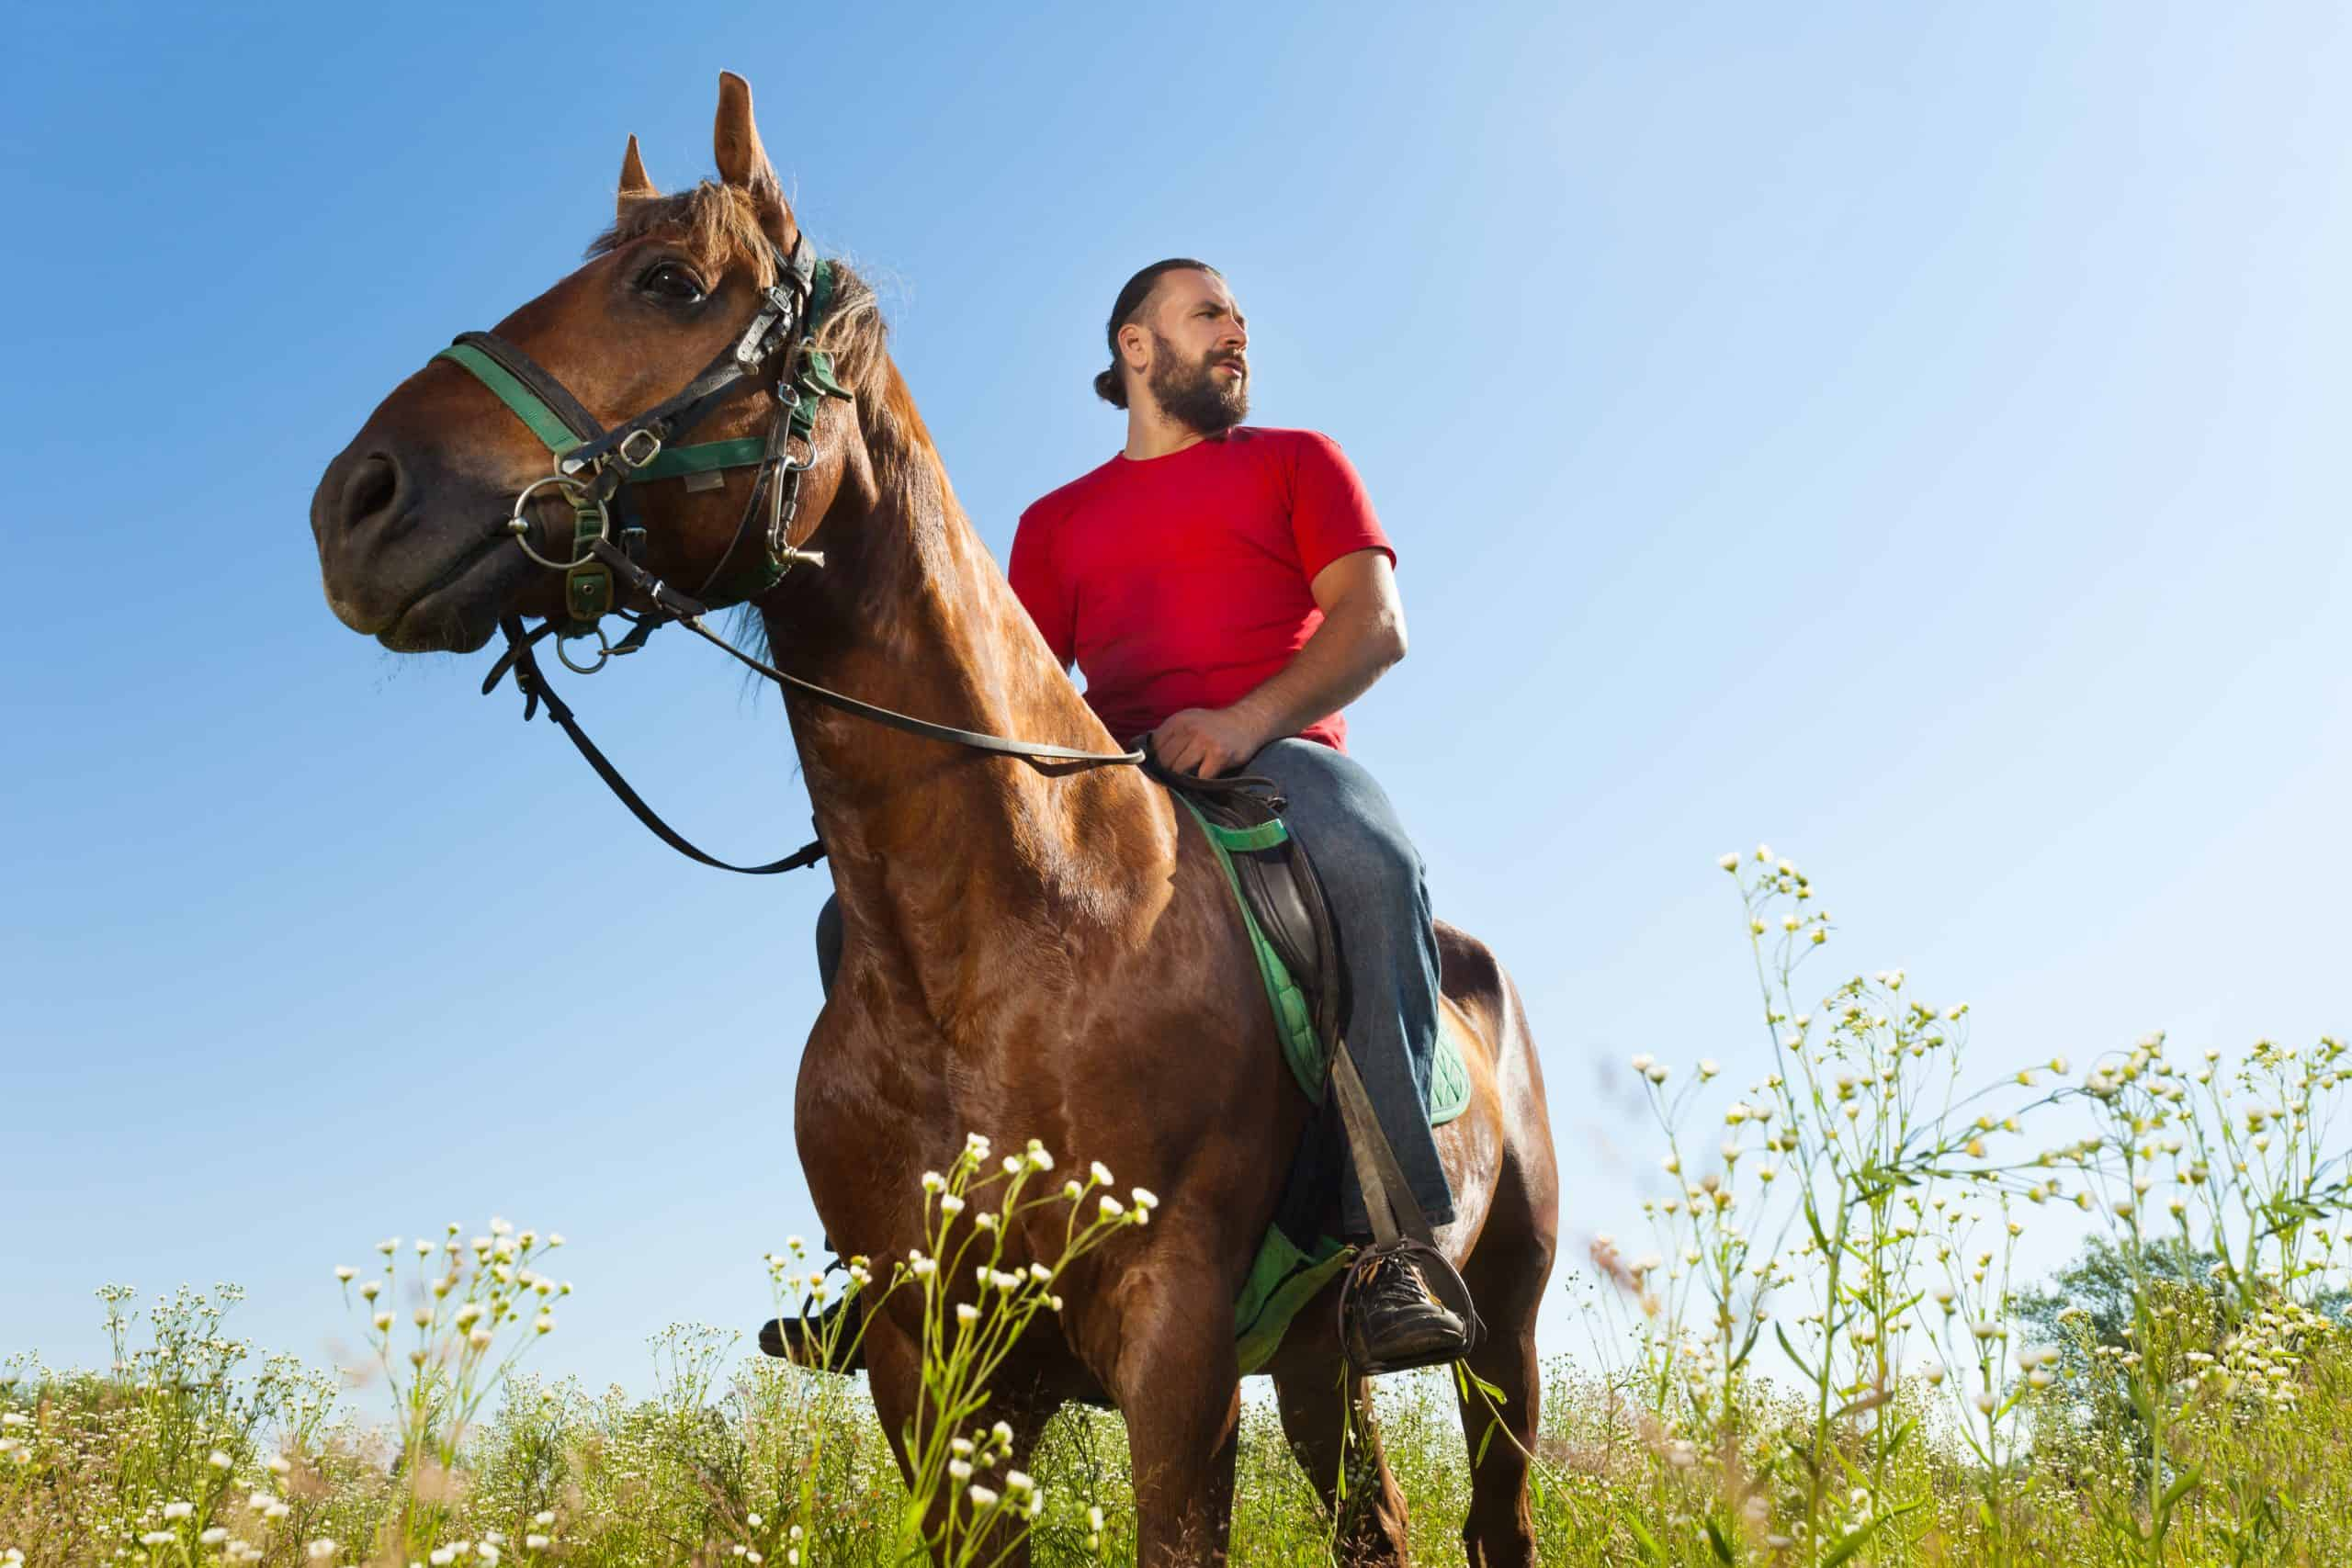 Portrait of horseback rider at the field in summer against blue sky